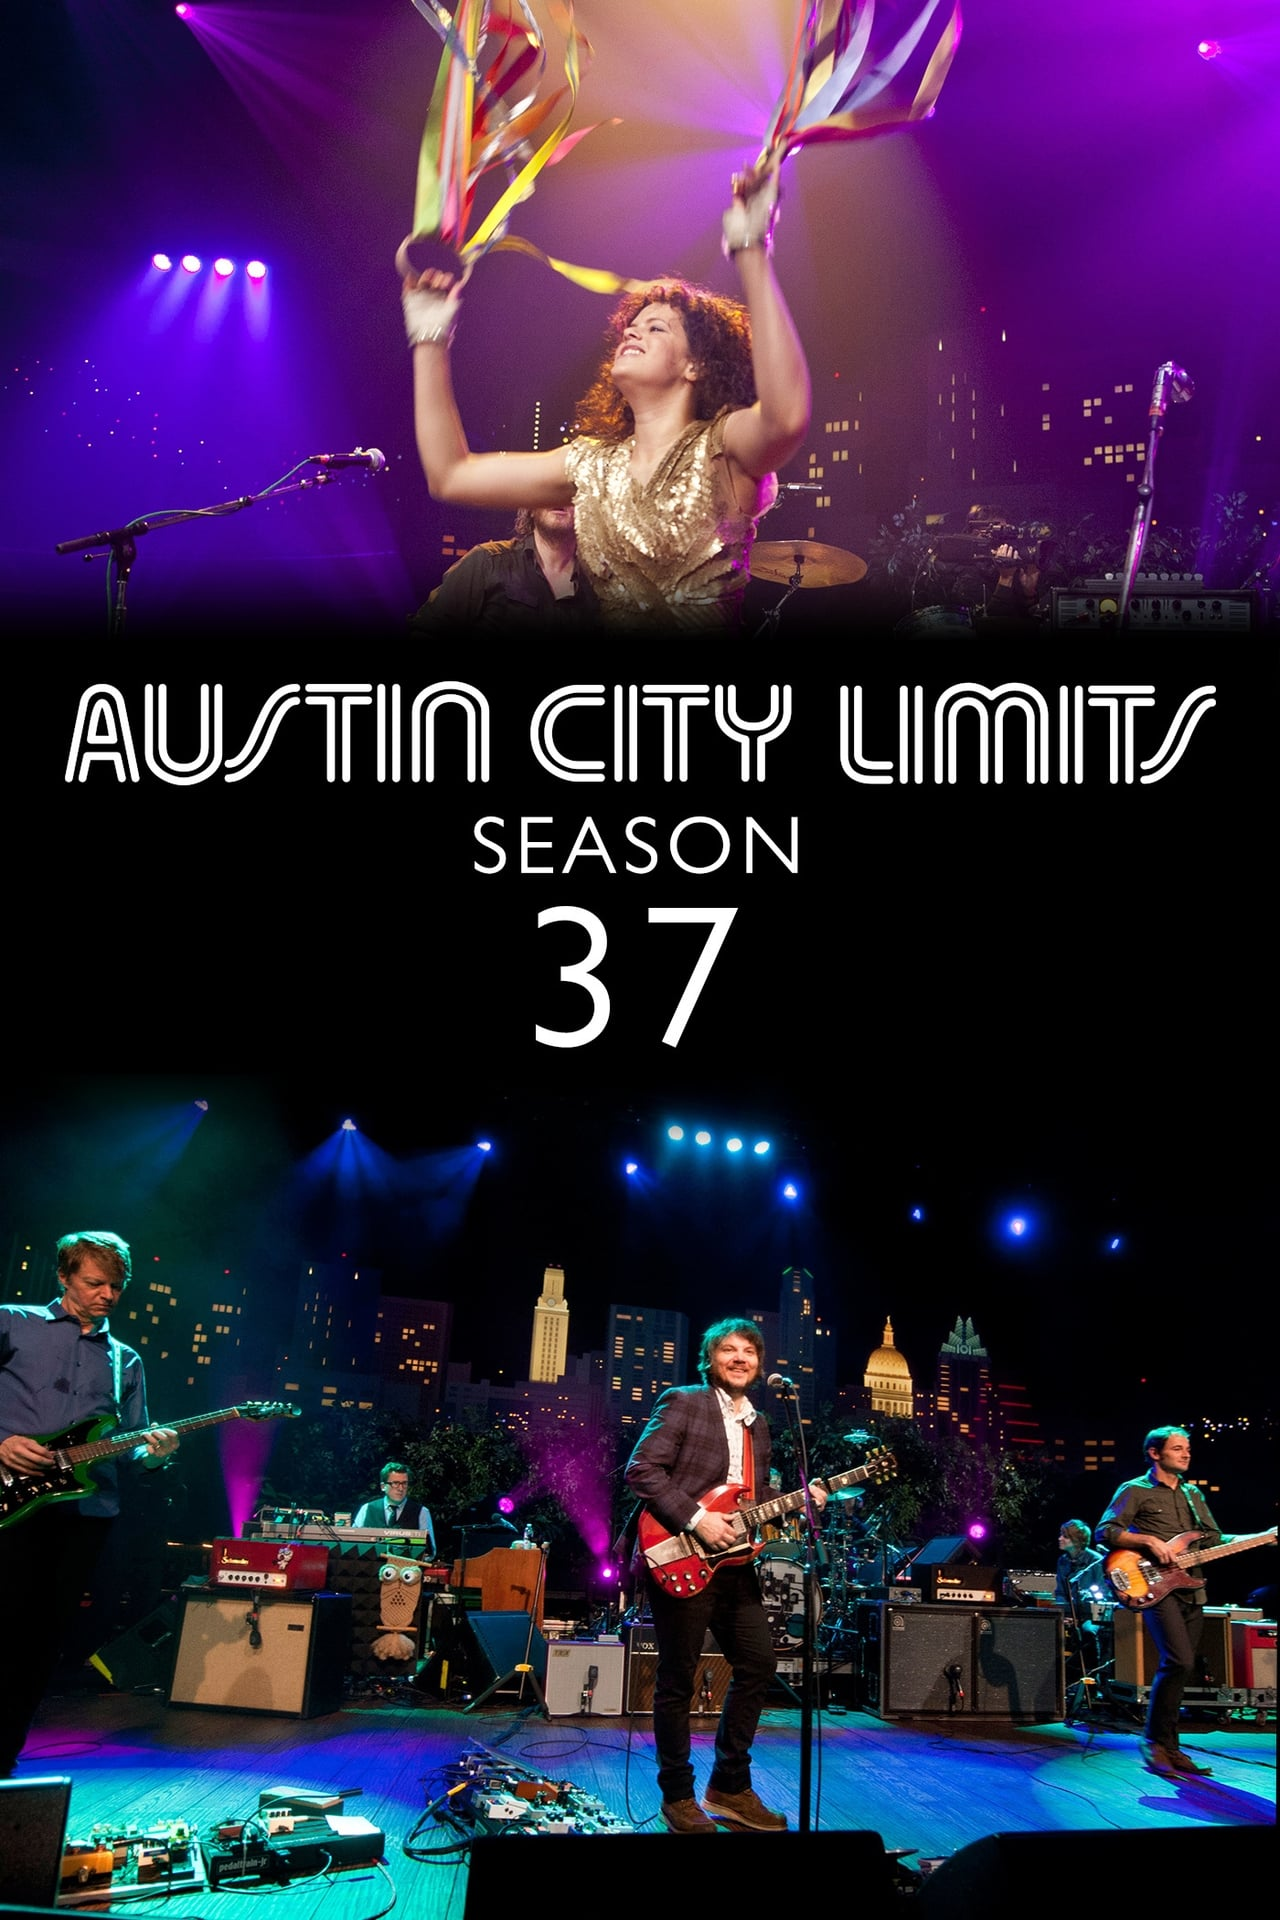 Putlocker Austin City Limits Season 37 (2011)